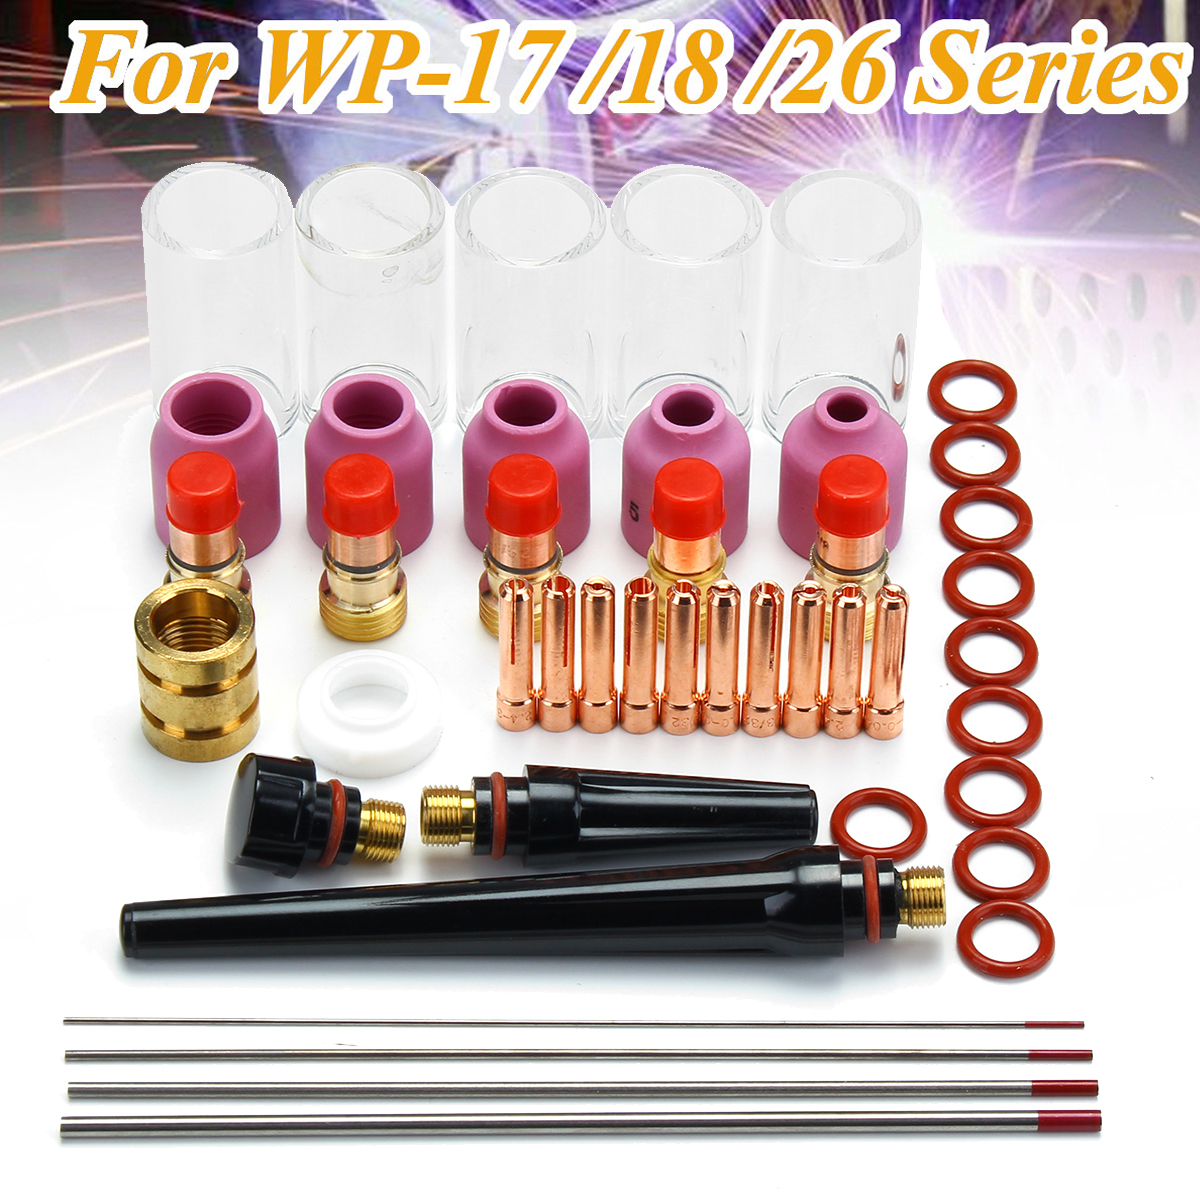 44Pcs TIG Welding Torch Stubby Gas Lens Glass Pyrex Cup Collect Body Kit for WP-17/18/26 Series Welder Tool Accessory